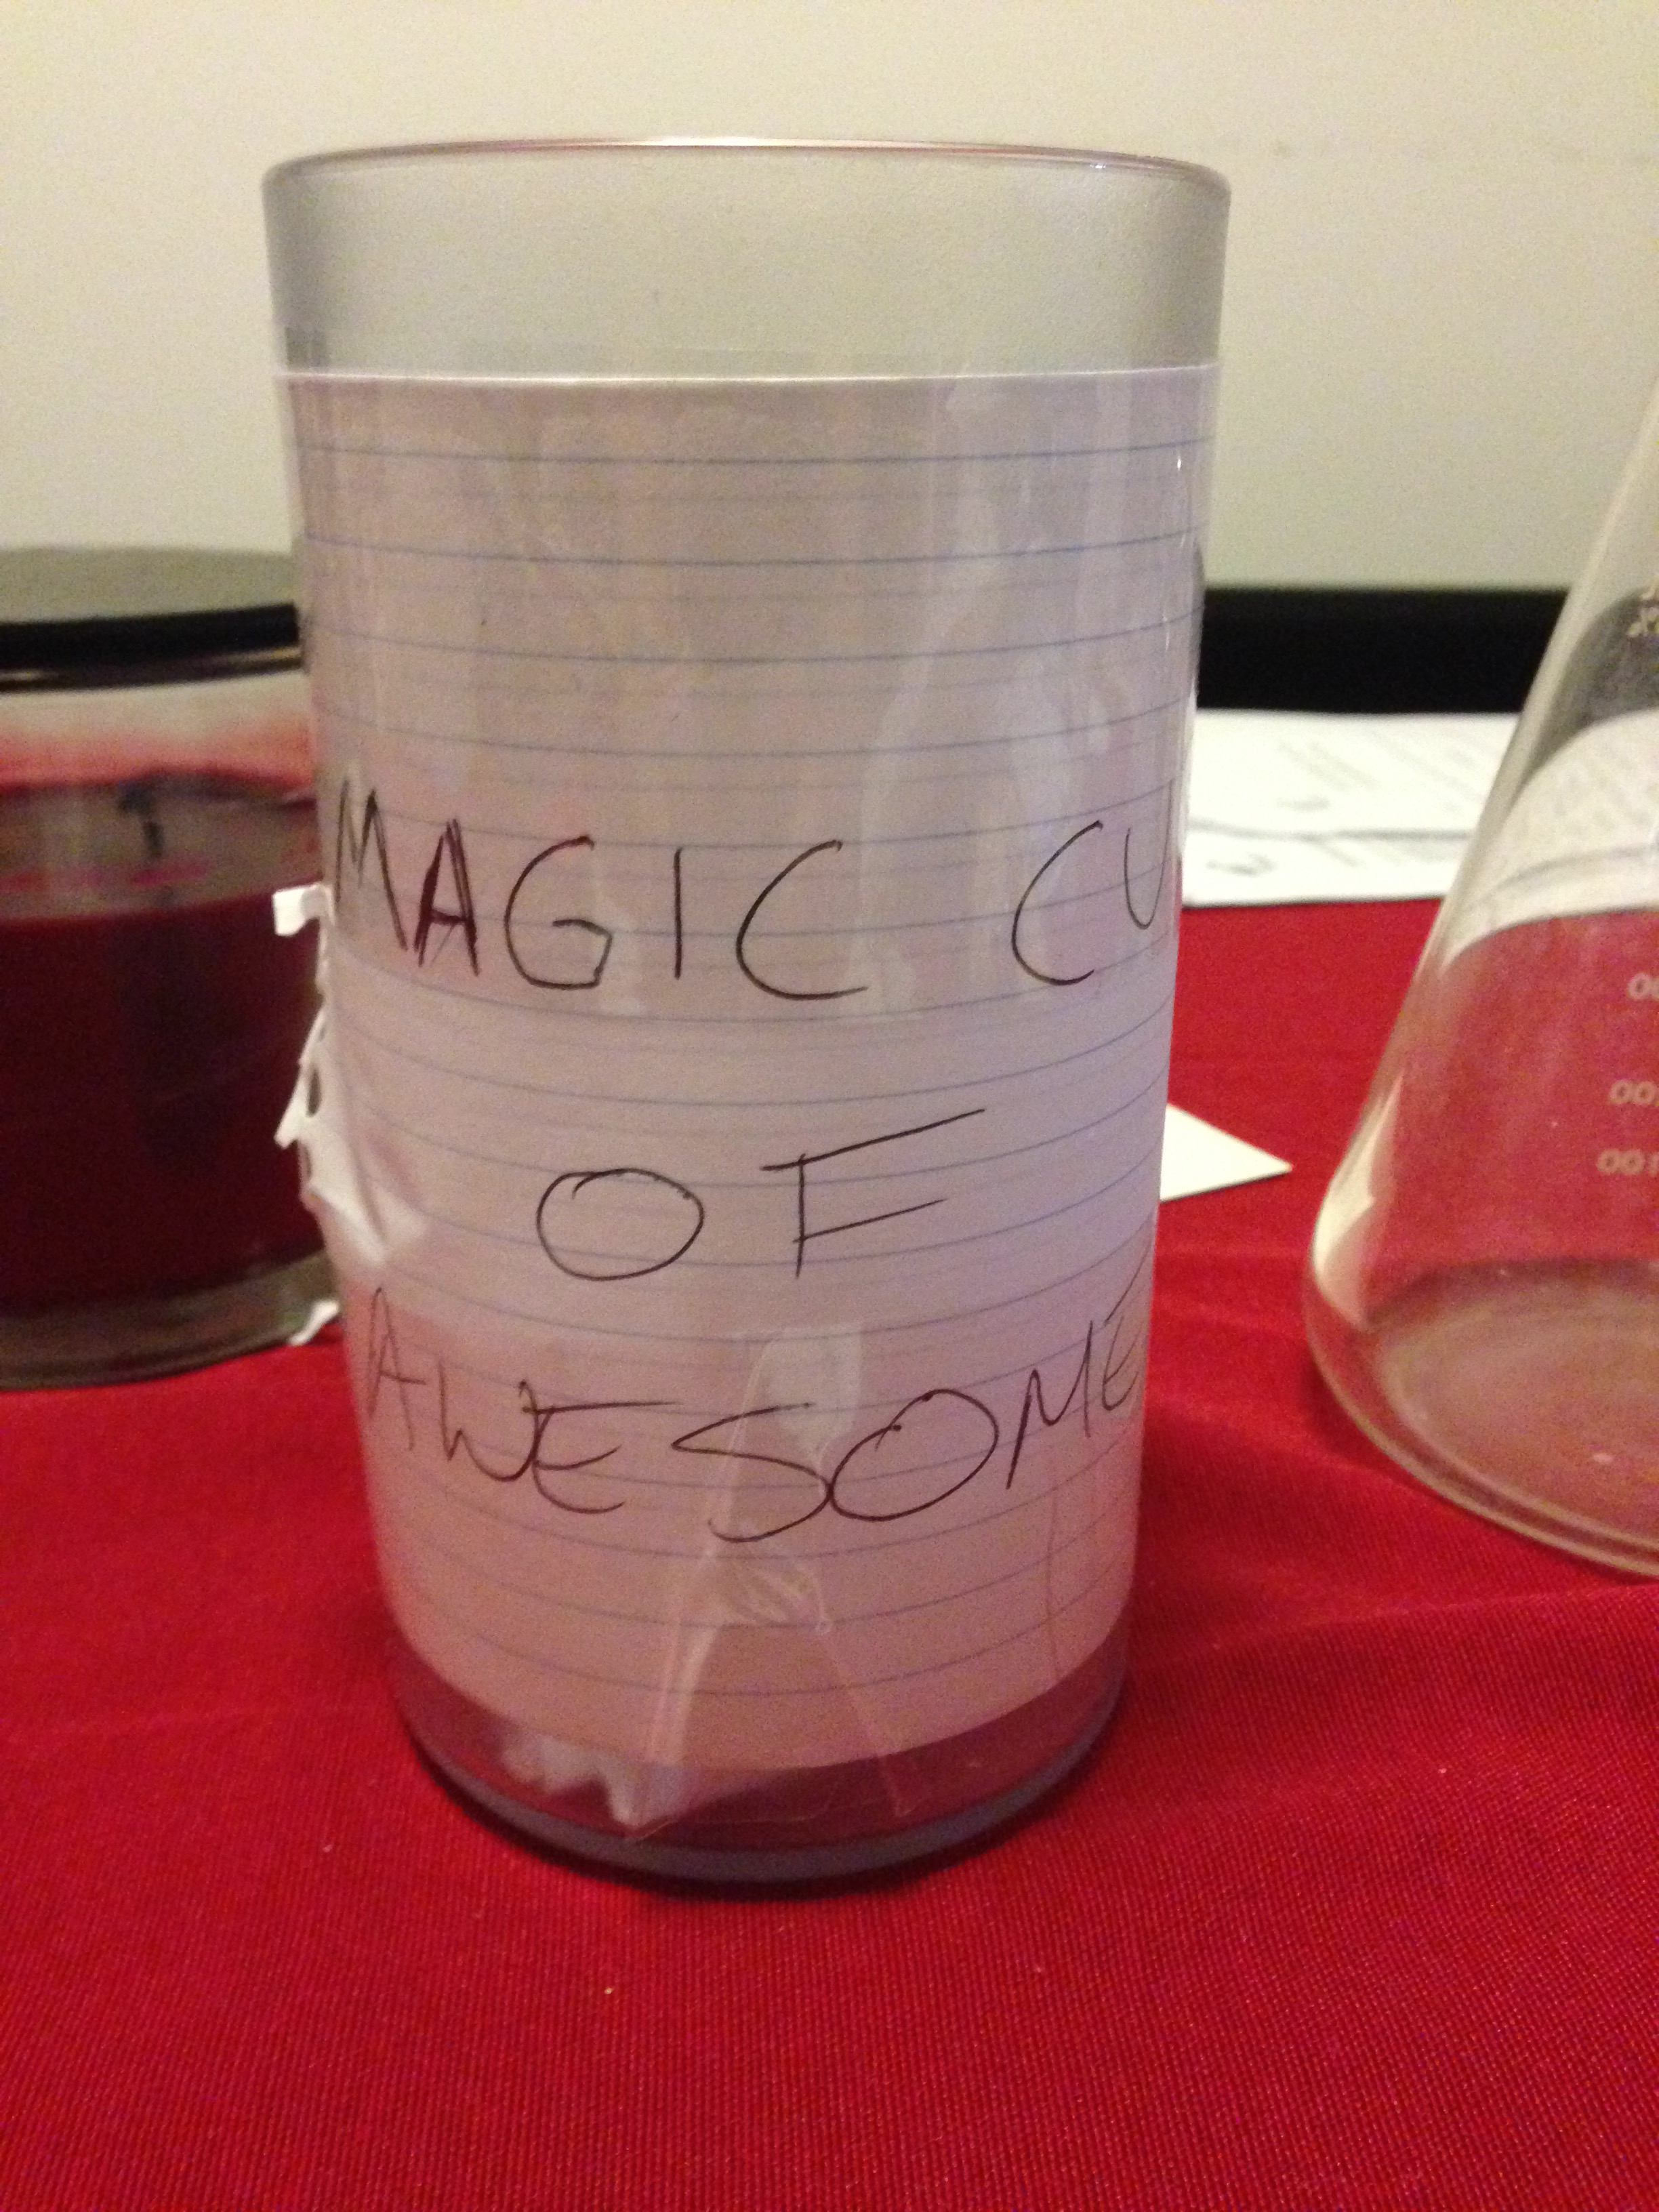 Picture of the magic cup of awesome